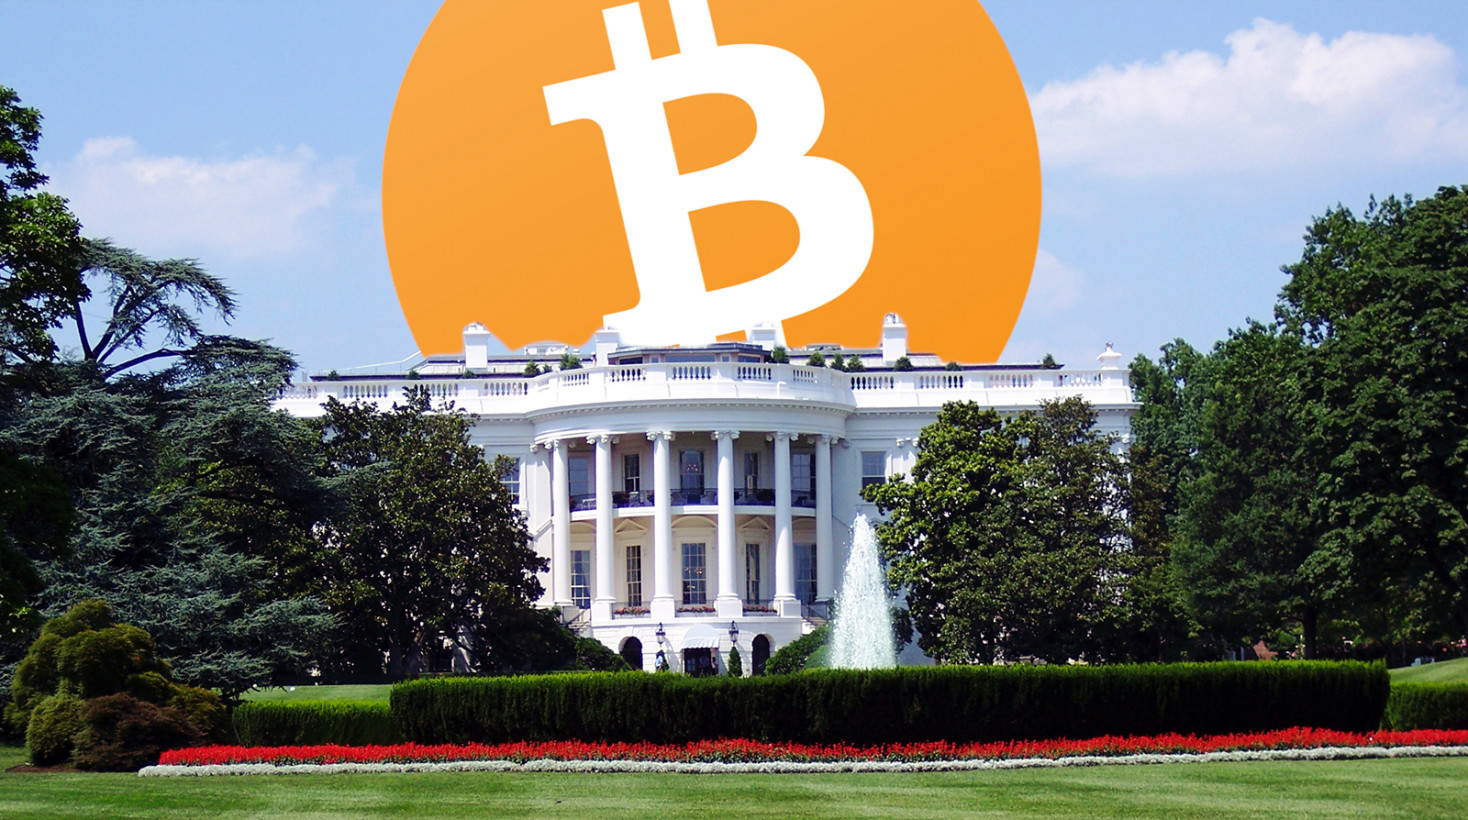 thenextweb.com - Matthew Beedham - Coinbase, Polychain Capital, and others unite to form cryptocurrency lobbying group in DC